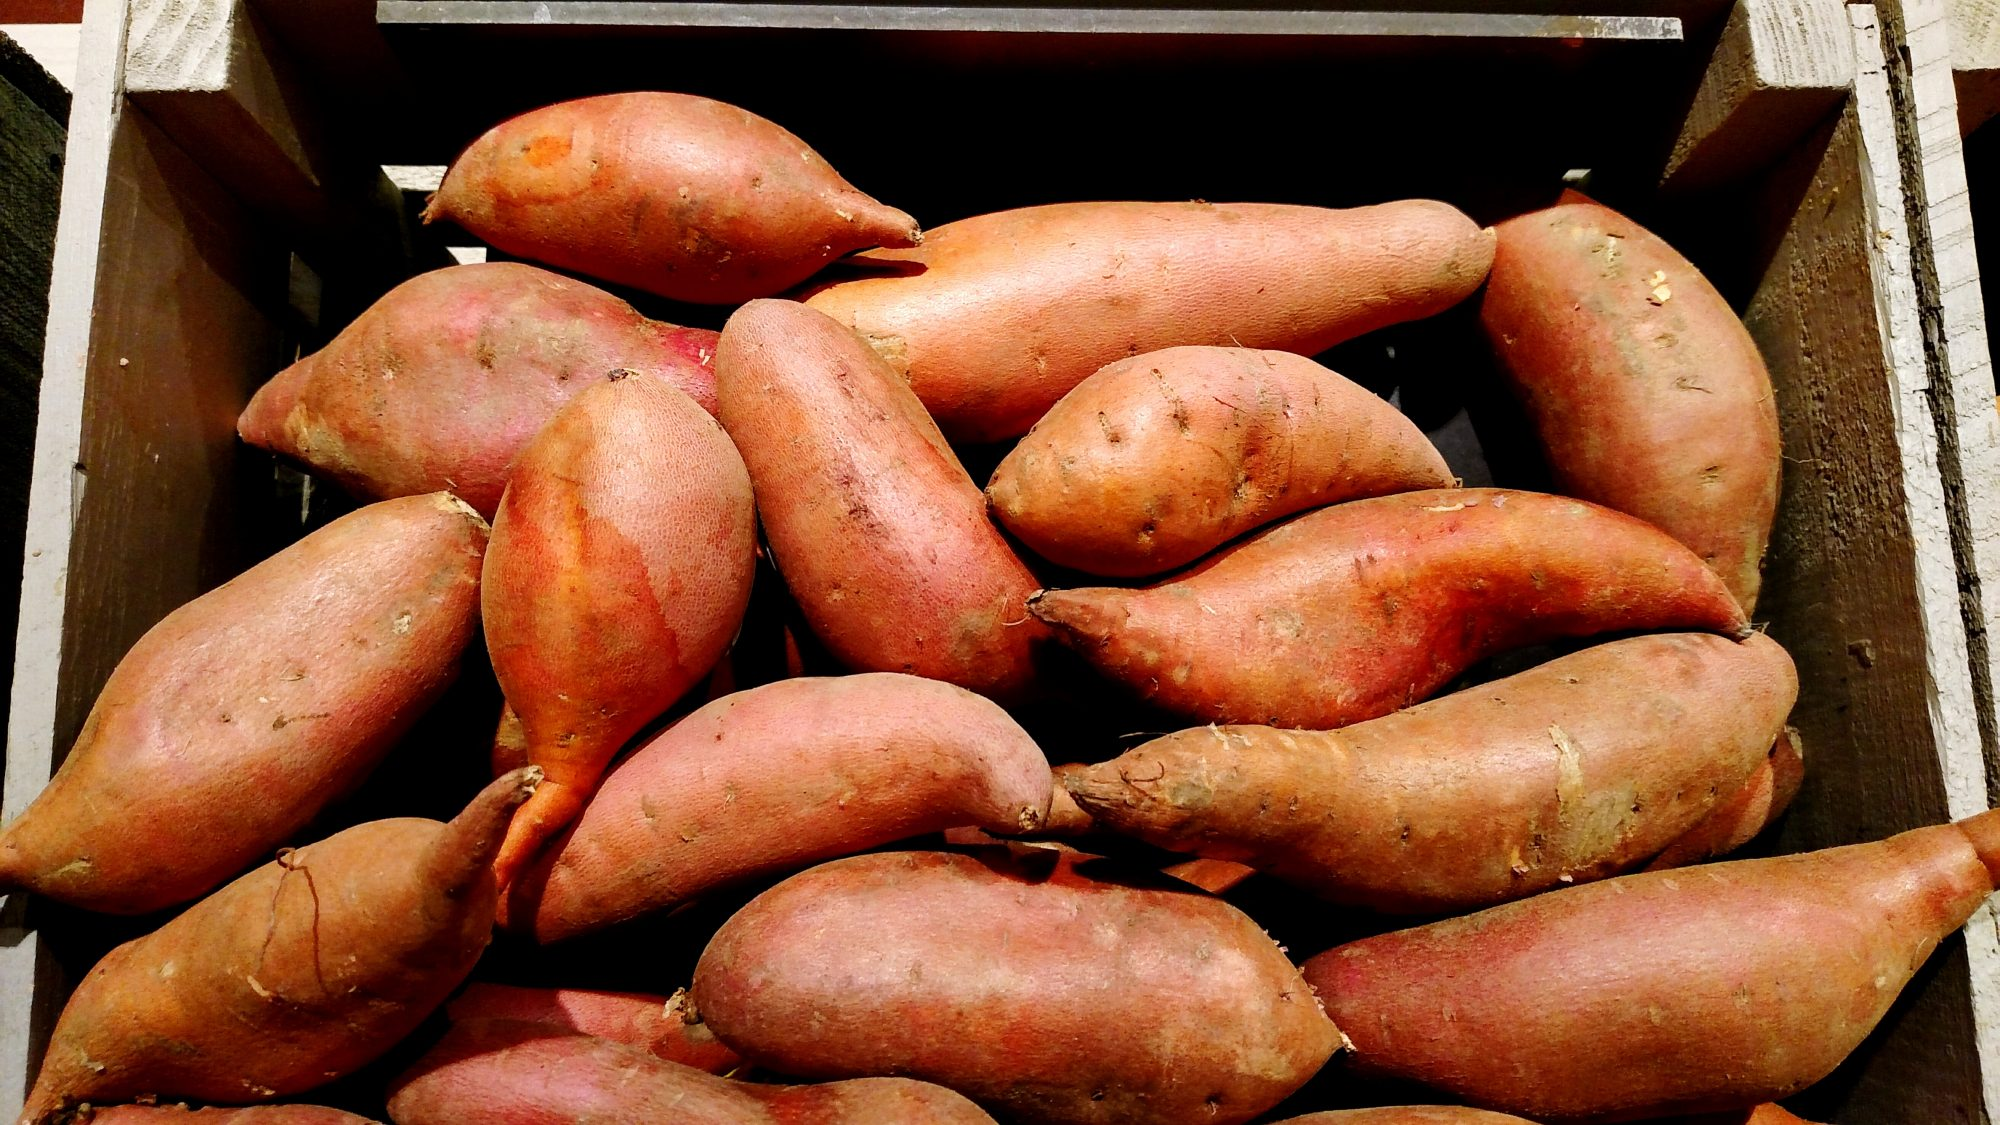 sweet potatoes in a pile